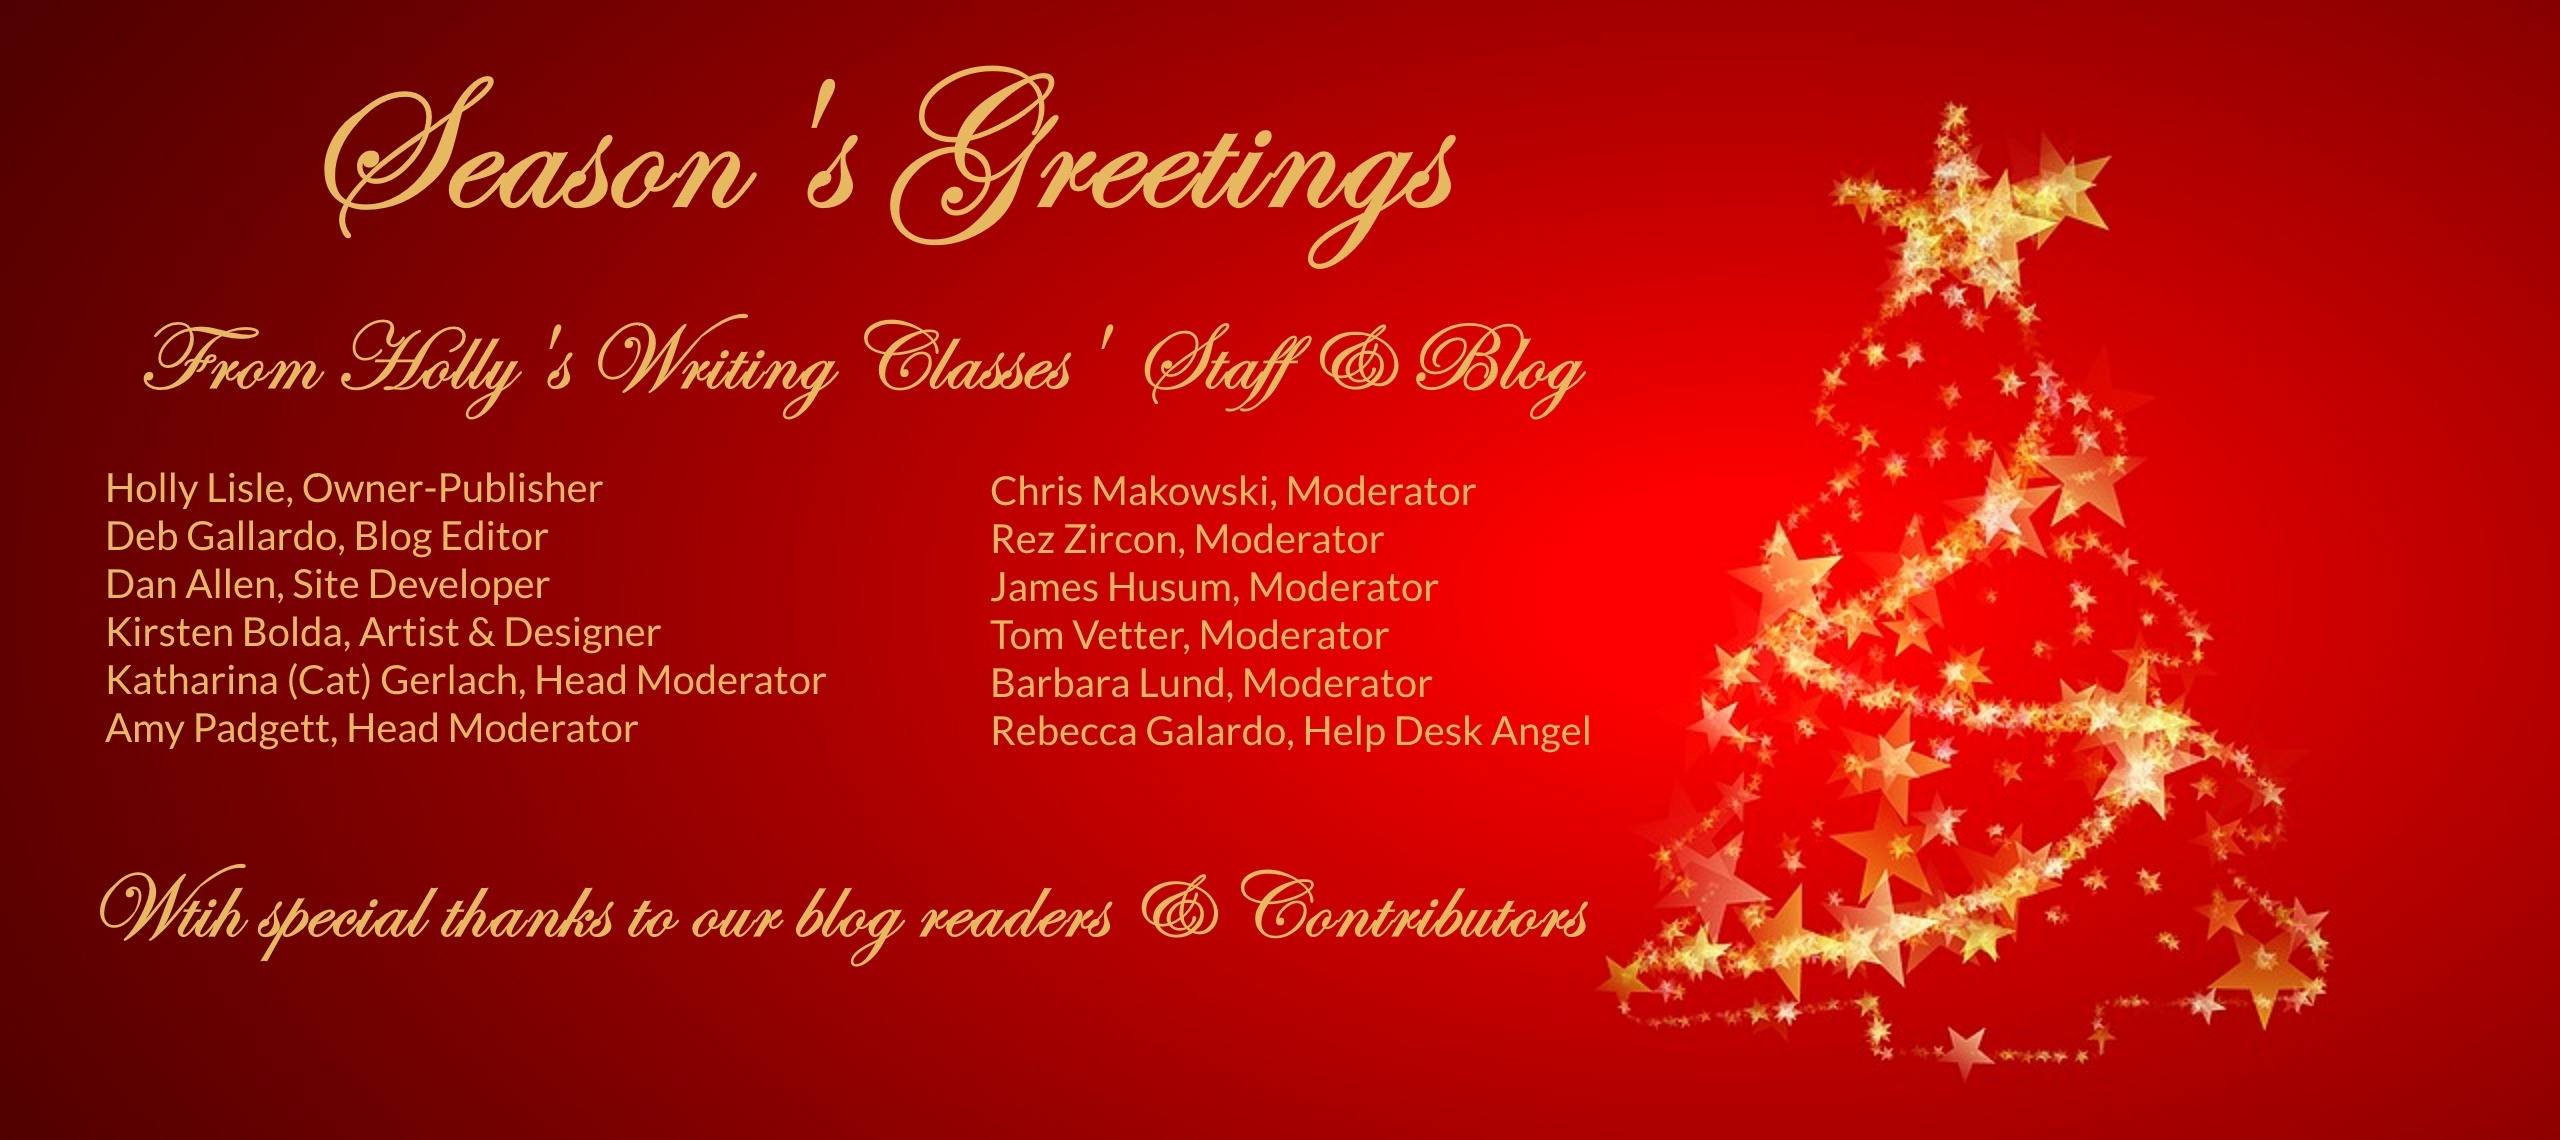 hwc-staff-christmas-card